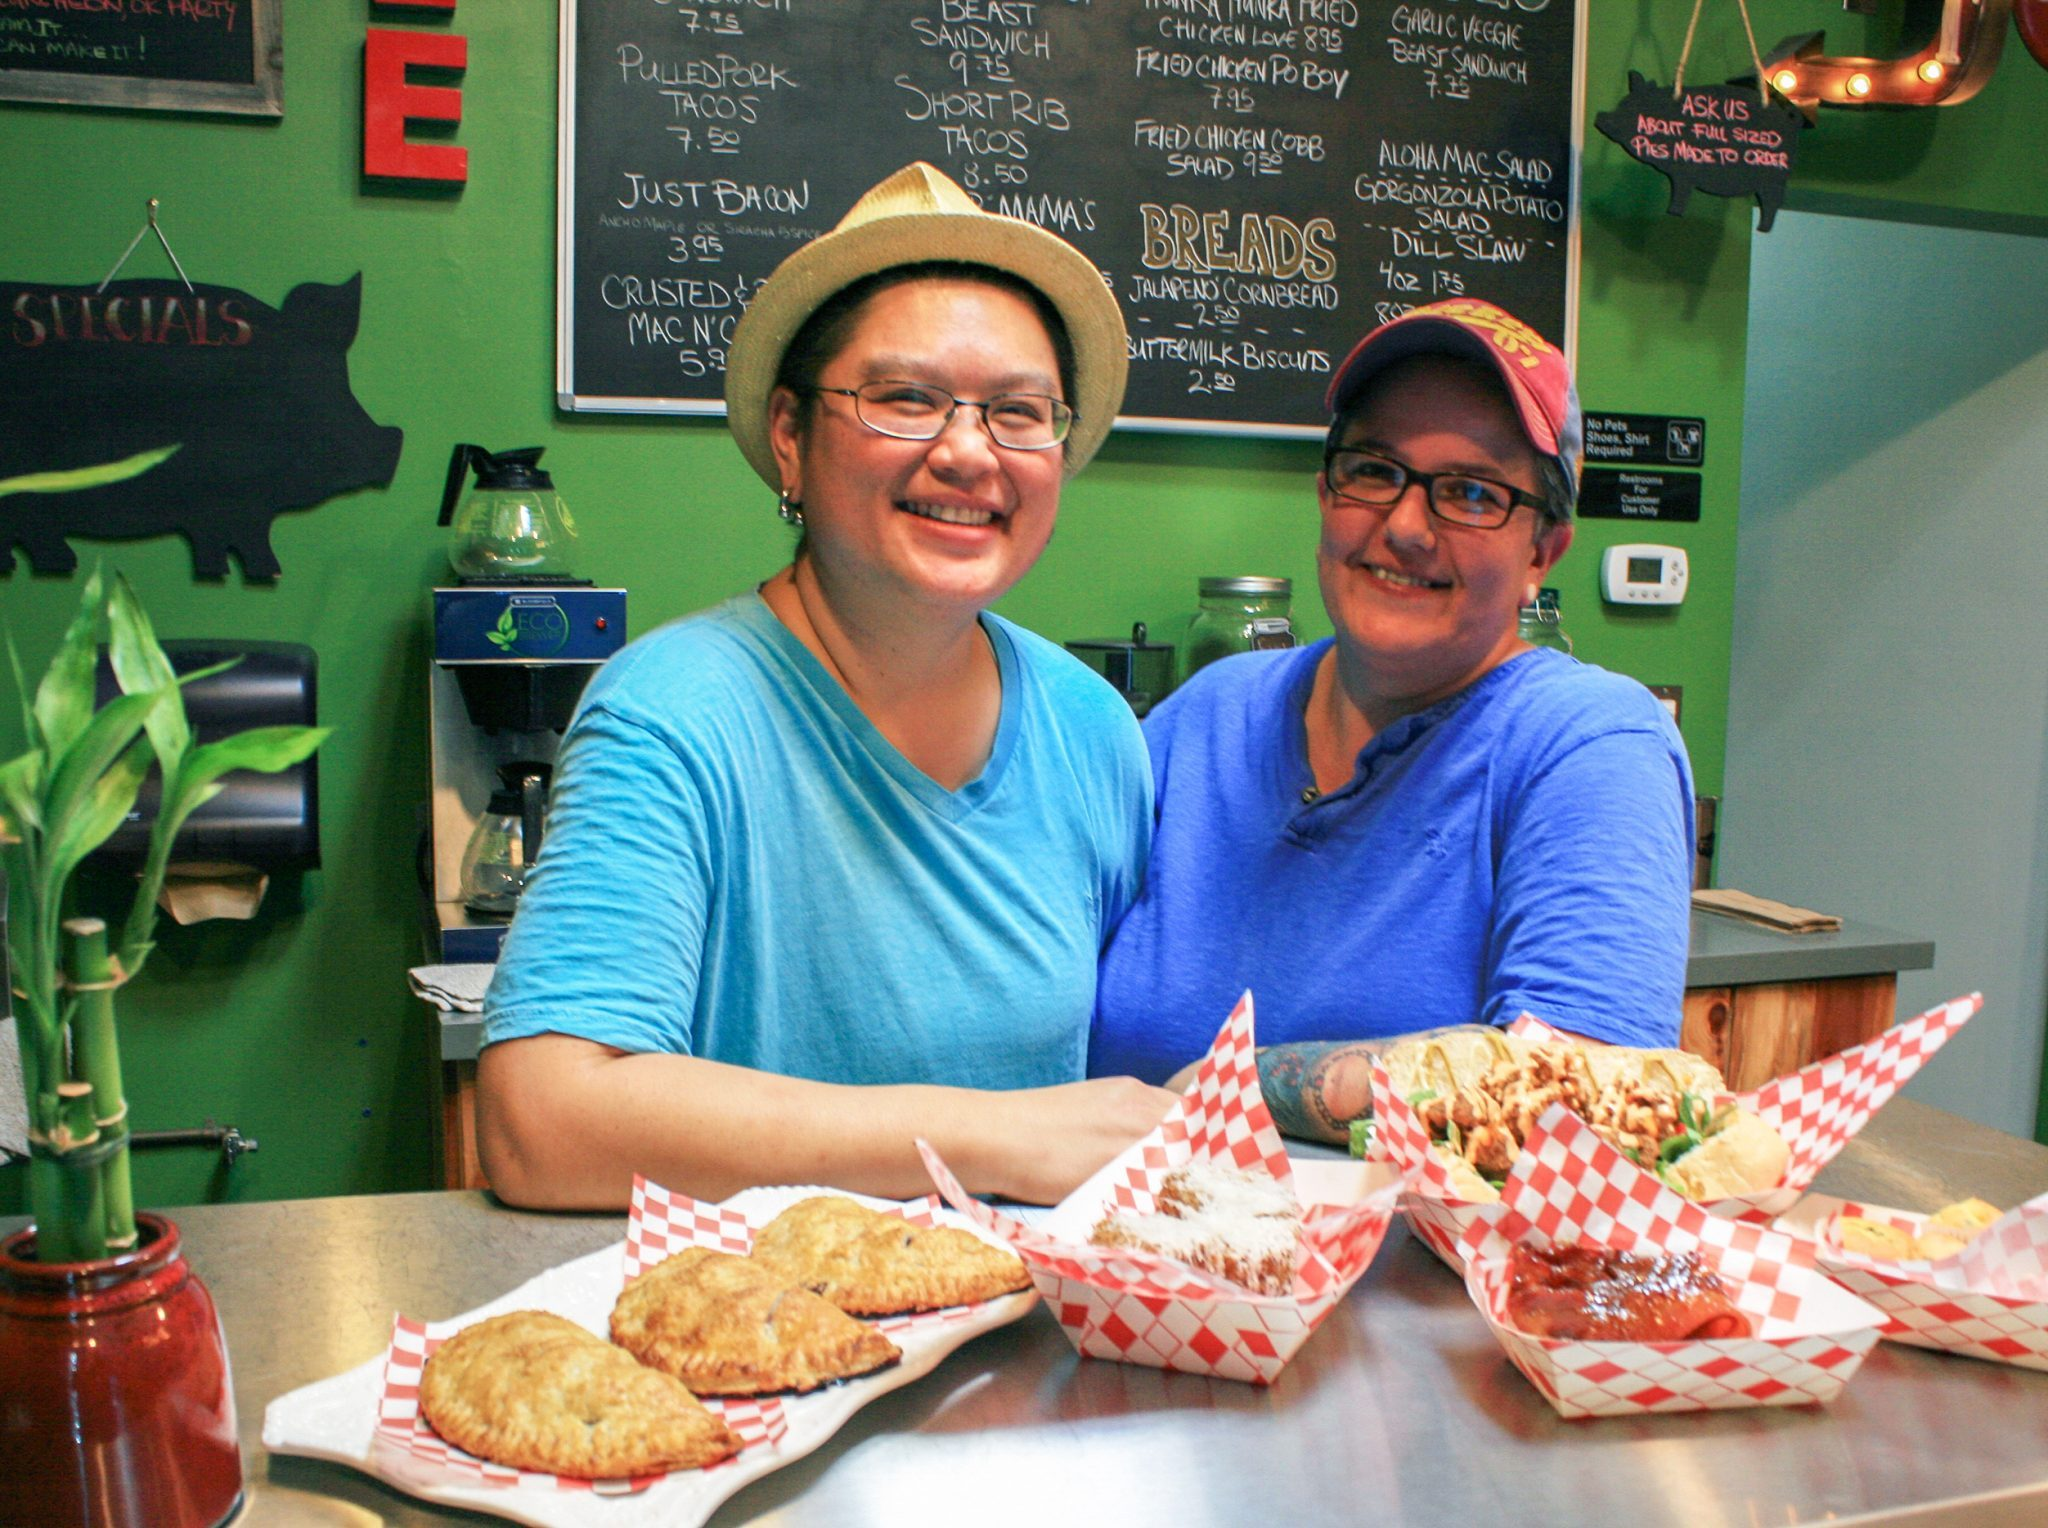 Monique LeBleu/Courier Chef and co-owners Ty Wu (left) and Shannon Hart (right) with their Chicken Po'Boy, Jalapeño cornbread, Crusted & Dusted Mac n' Cheese, Maple glazed bacon, and assorted pies at Braise & Crumble Cafe, Wednesday, September 2, 2015.